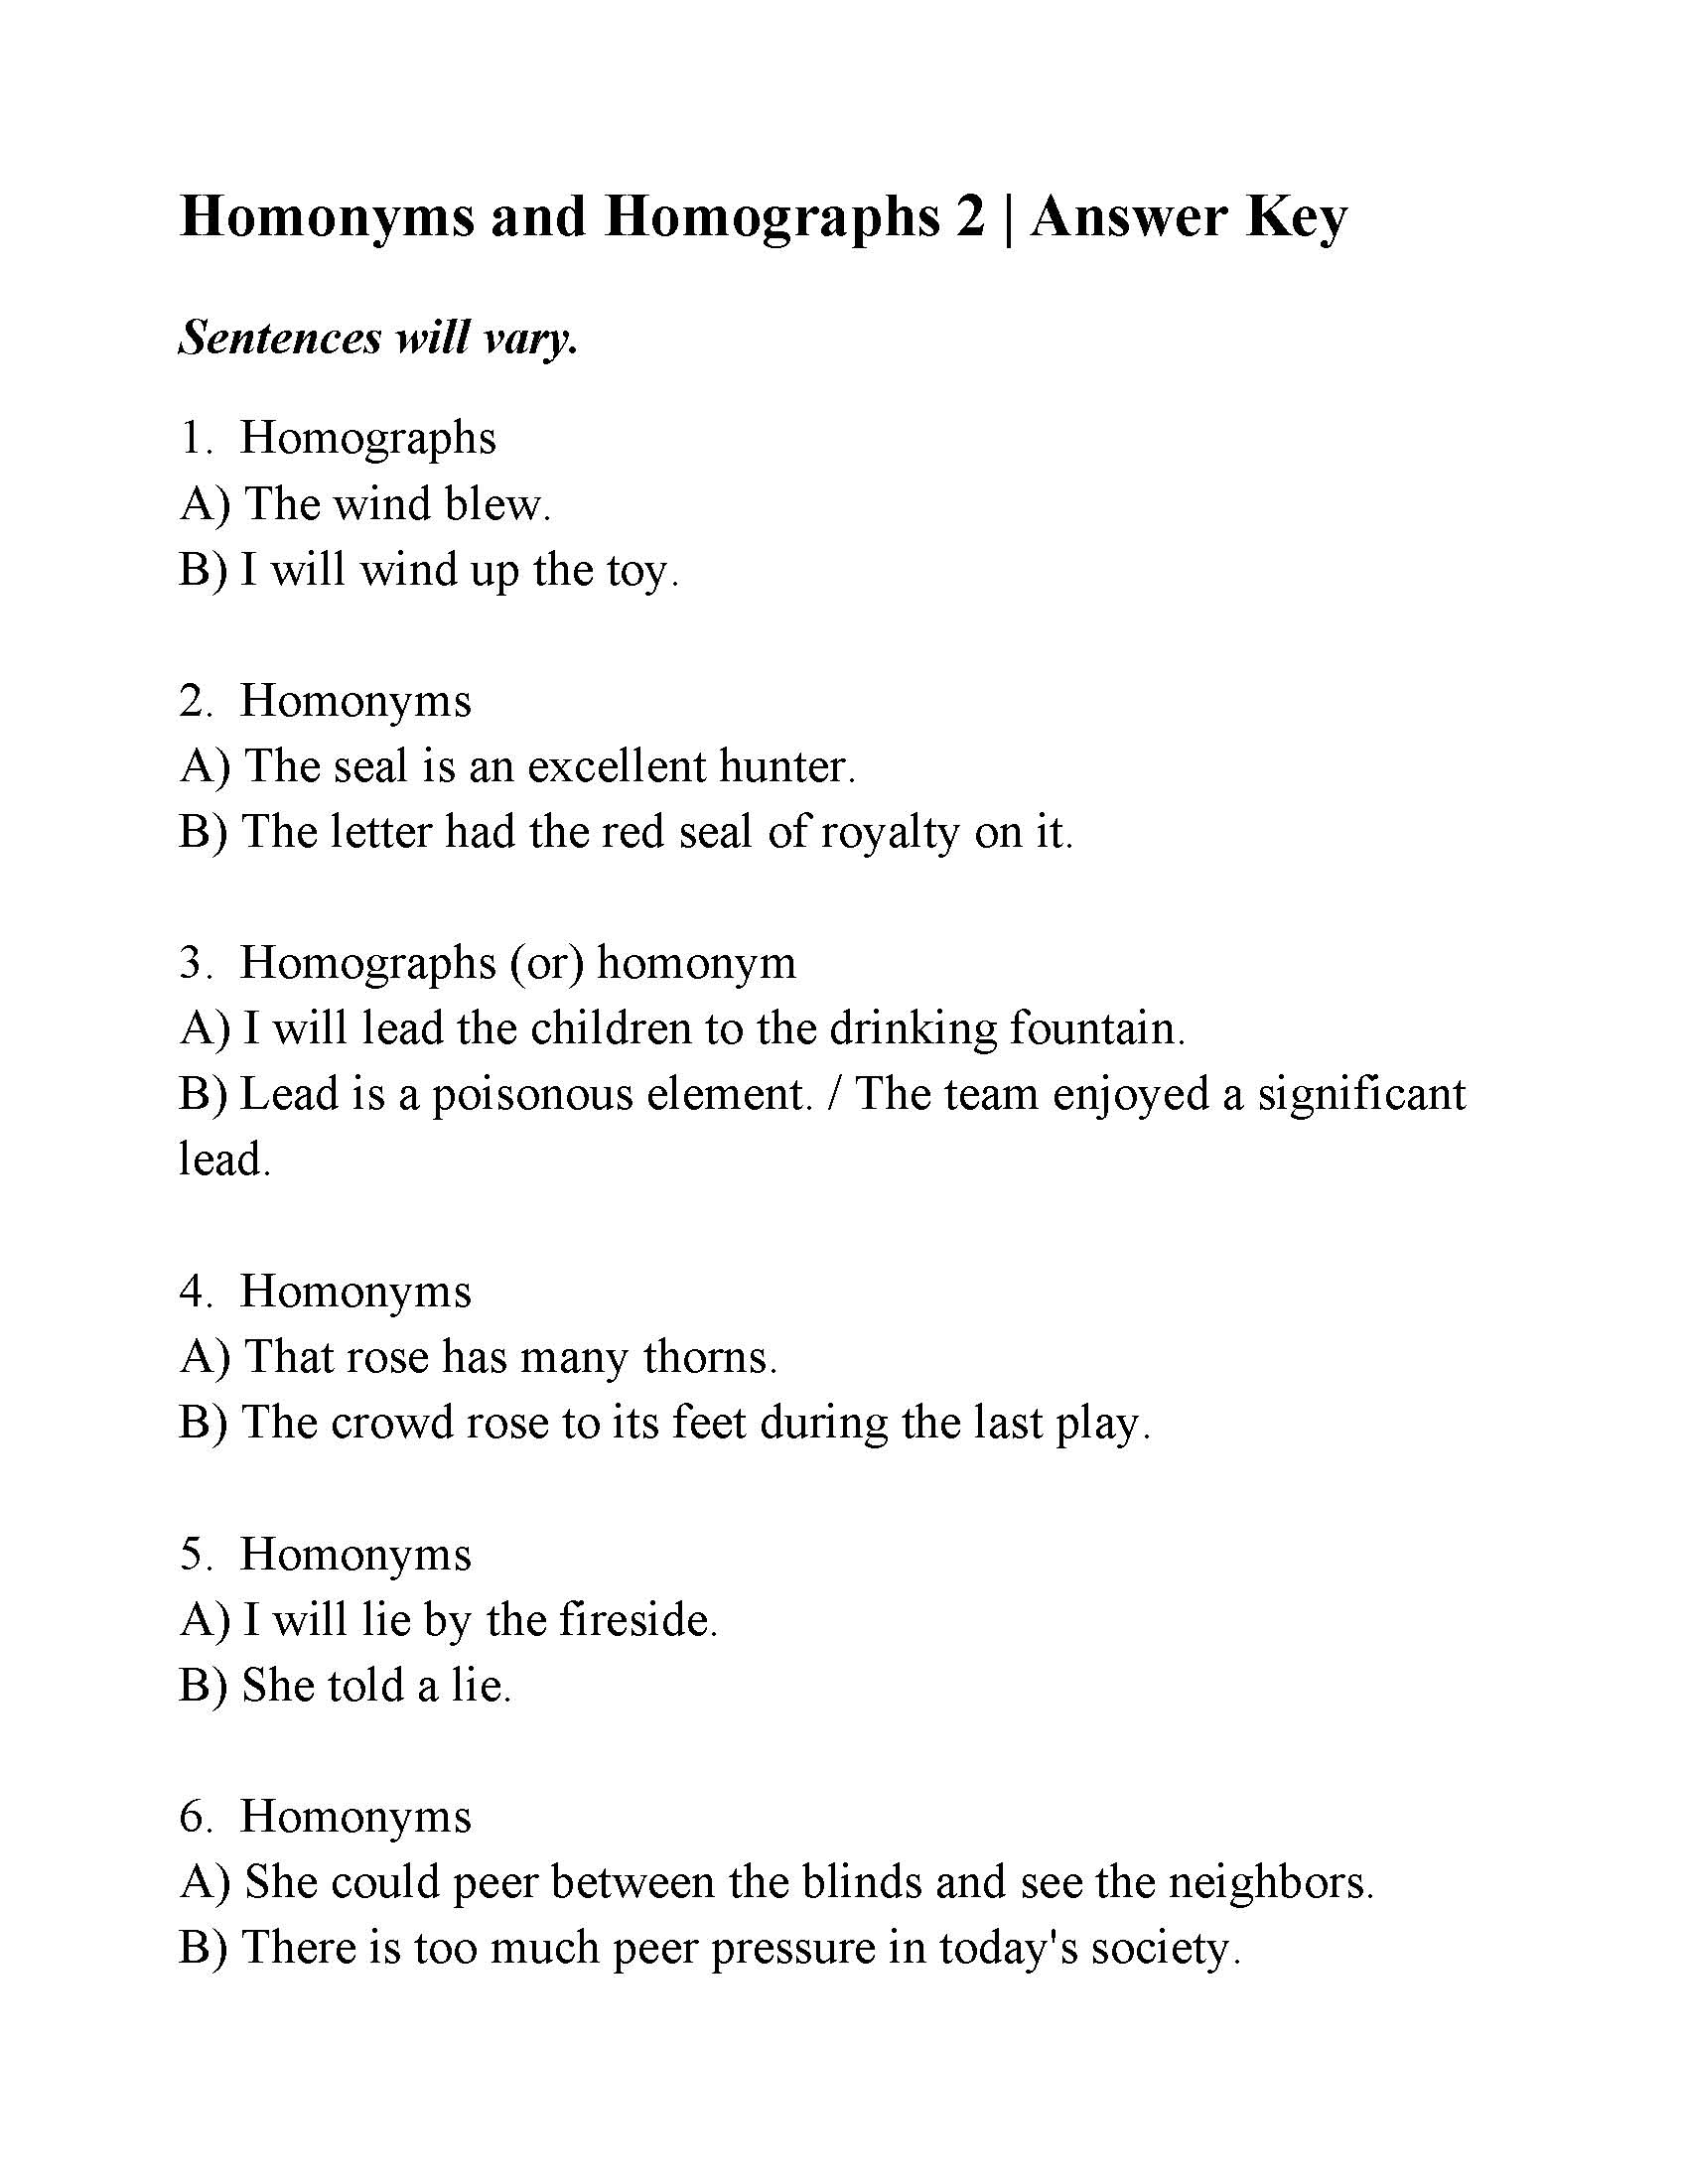 Homonyms and Homographs Worksheet 2 | Answers